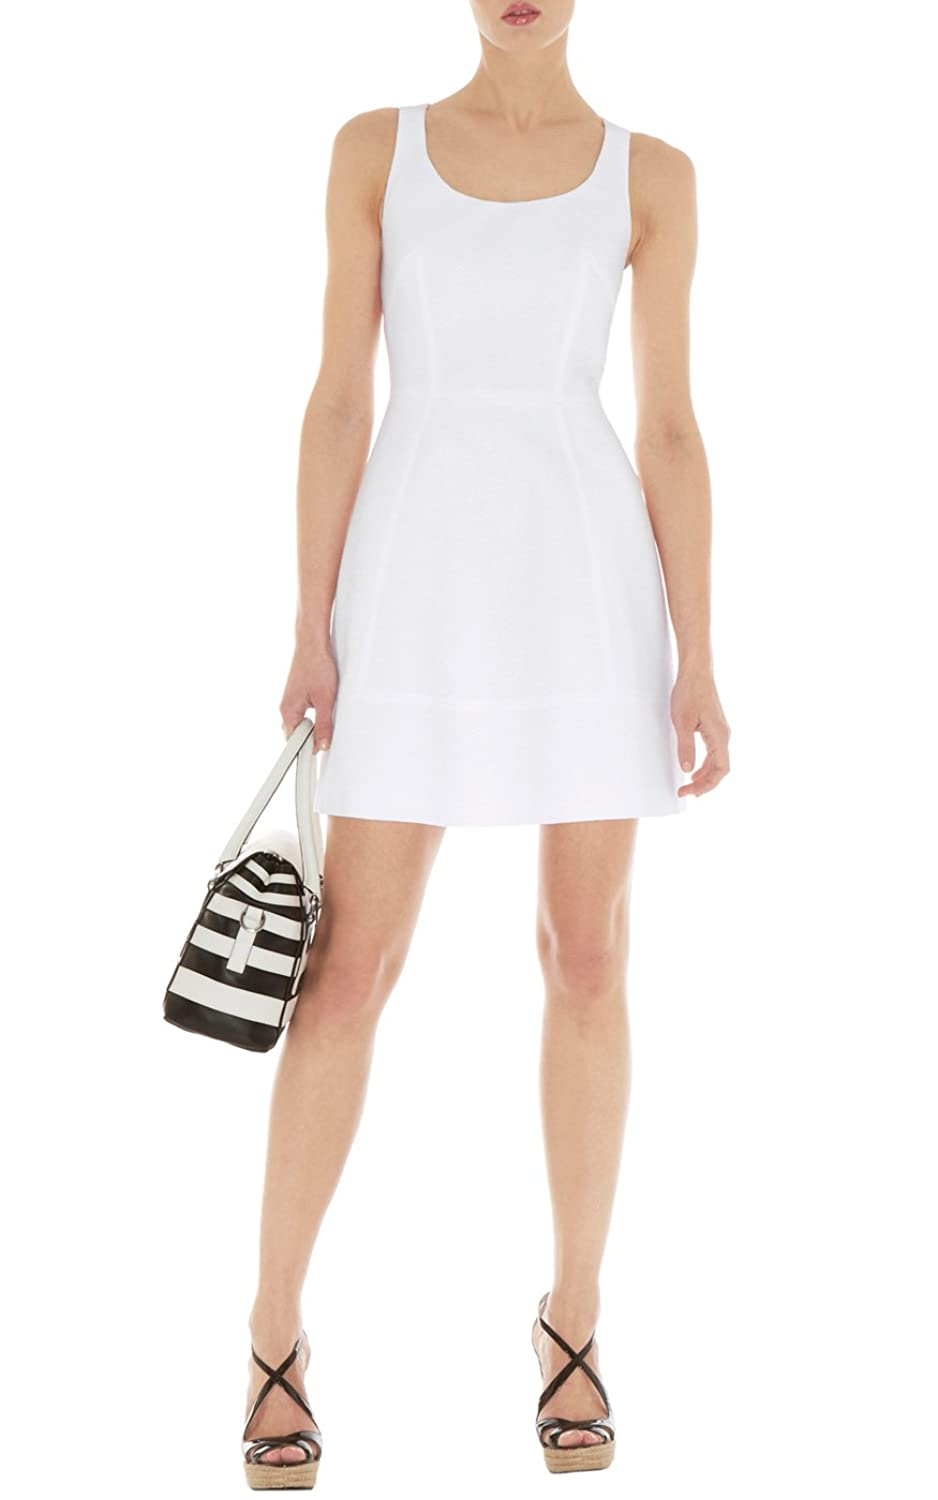 Karen Millen white cotton dress DQ232